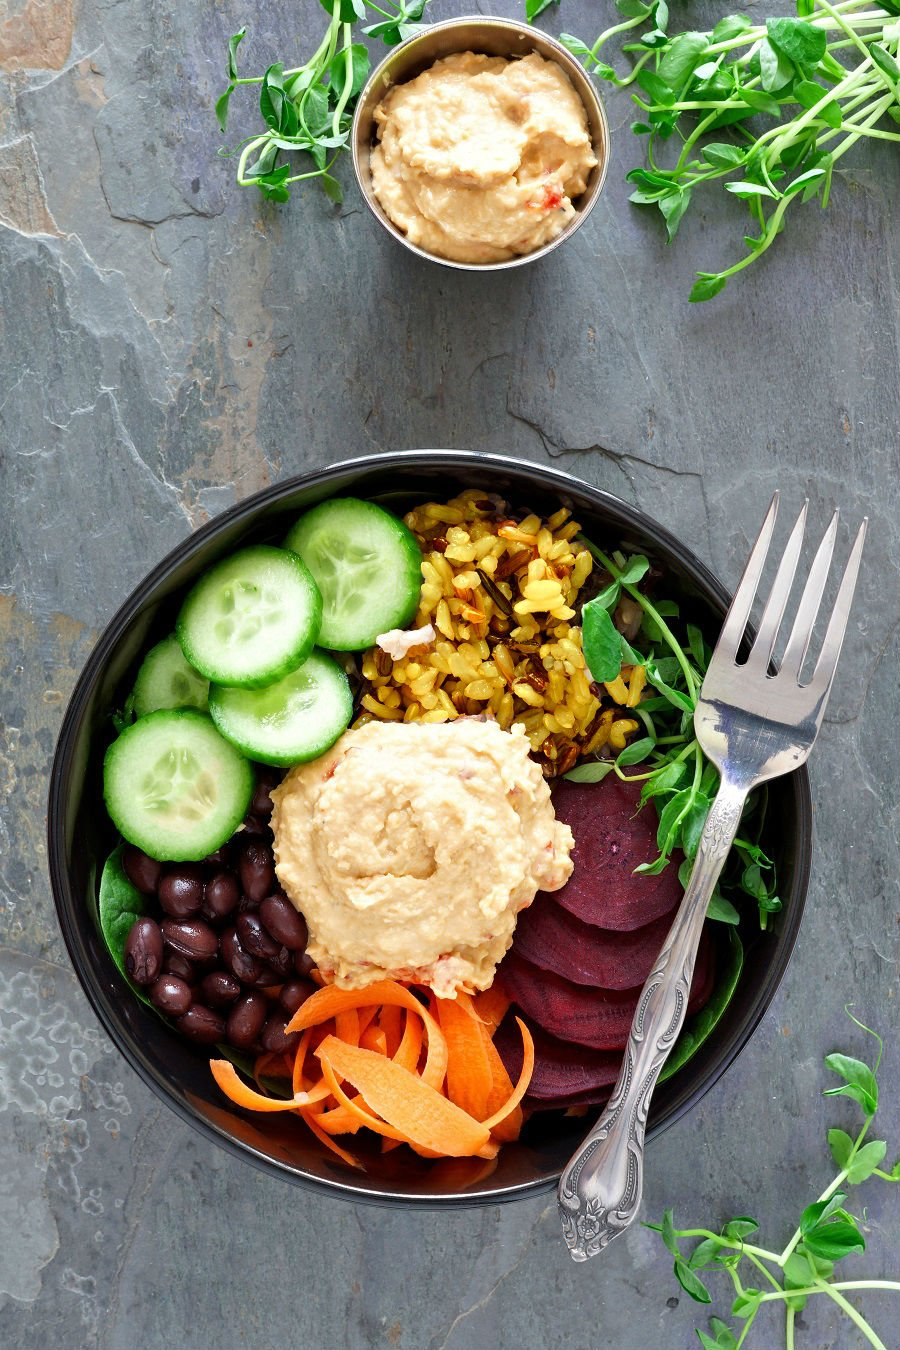 Lemon rice - a delicious and colorful base for nourish bowls!